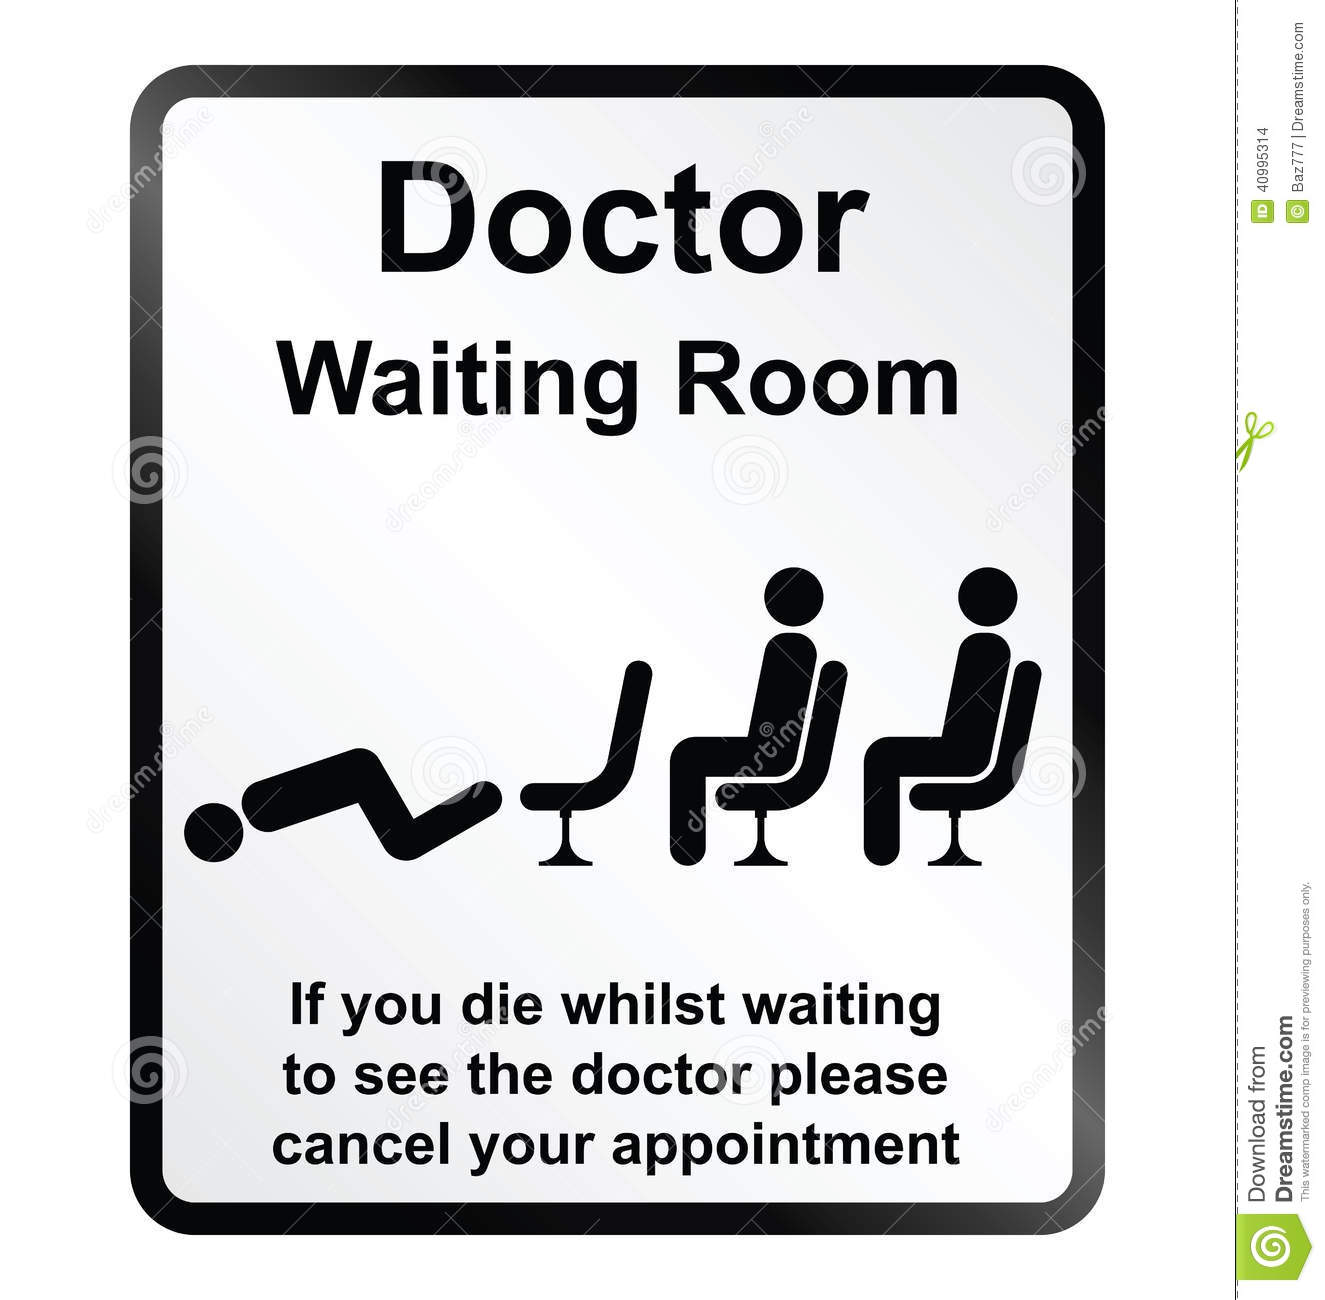 Doctors Waiting Room Information Sign Stock Vector - Image: 40995314